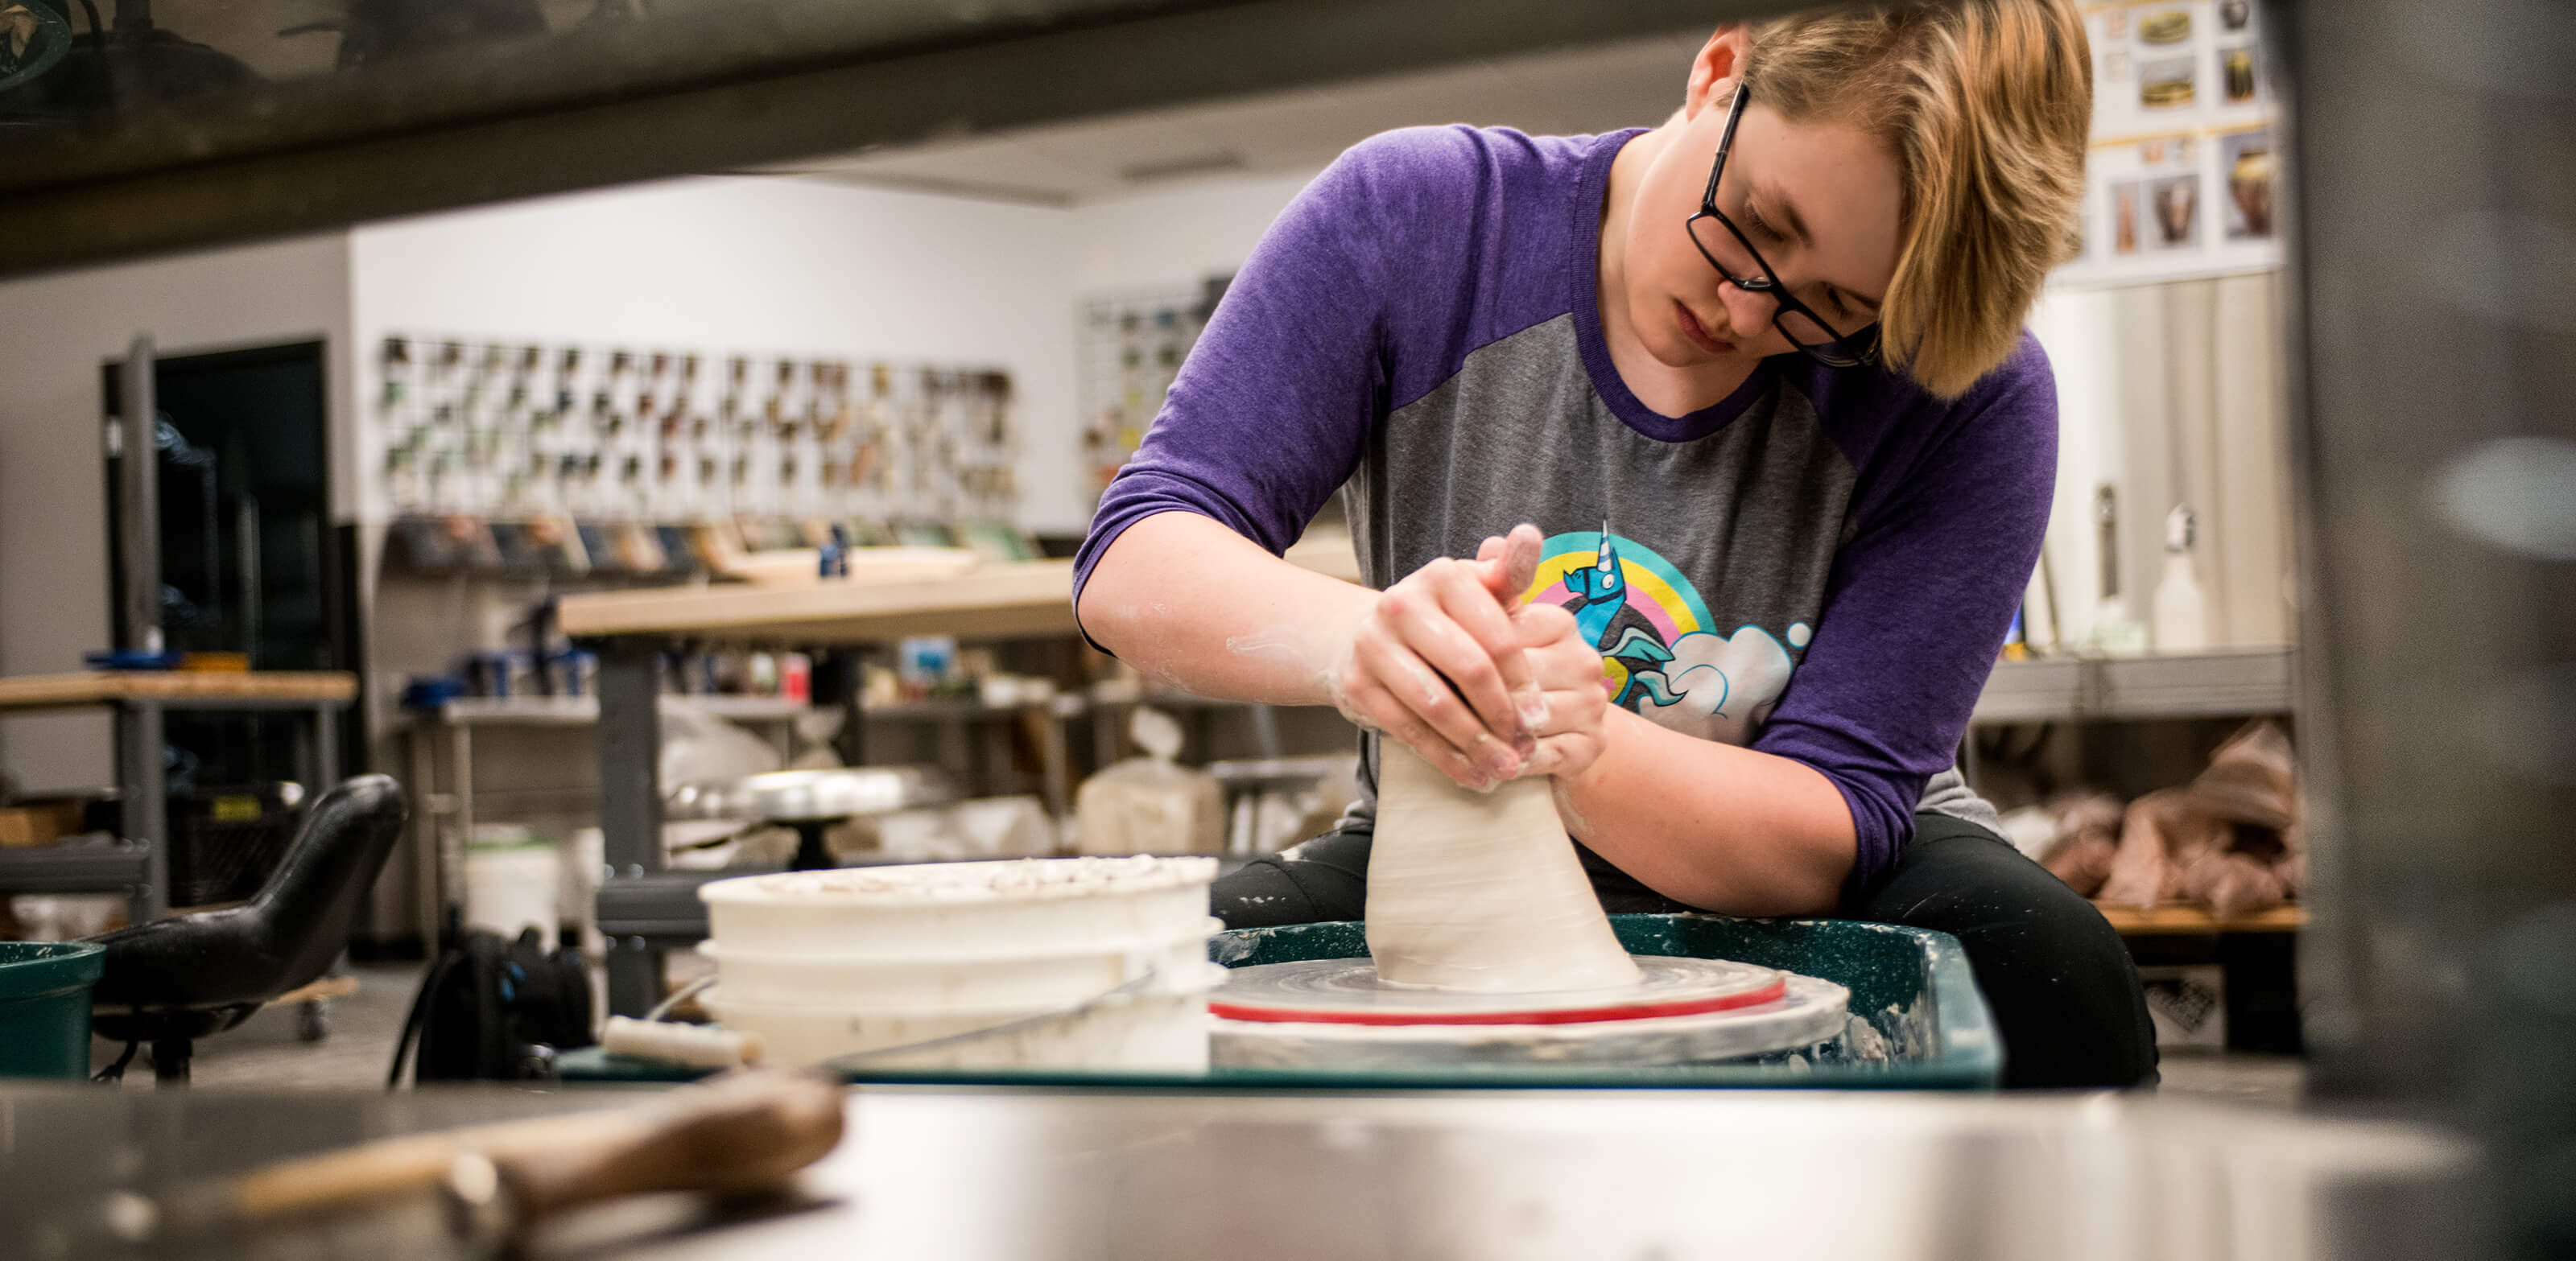 A student concentrates as she molds clay on a spinning wheel